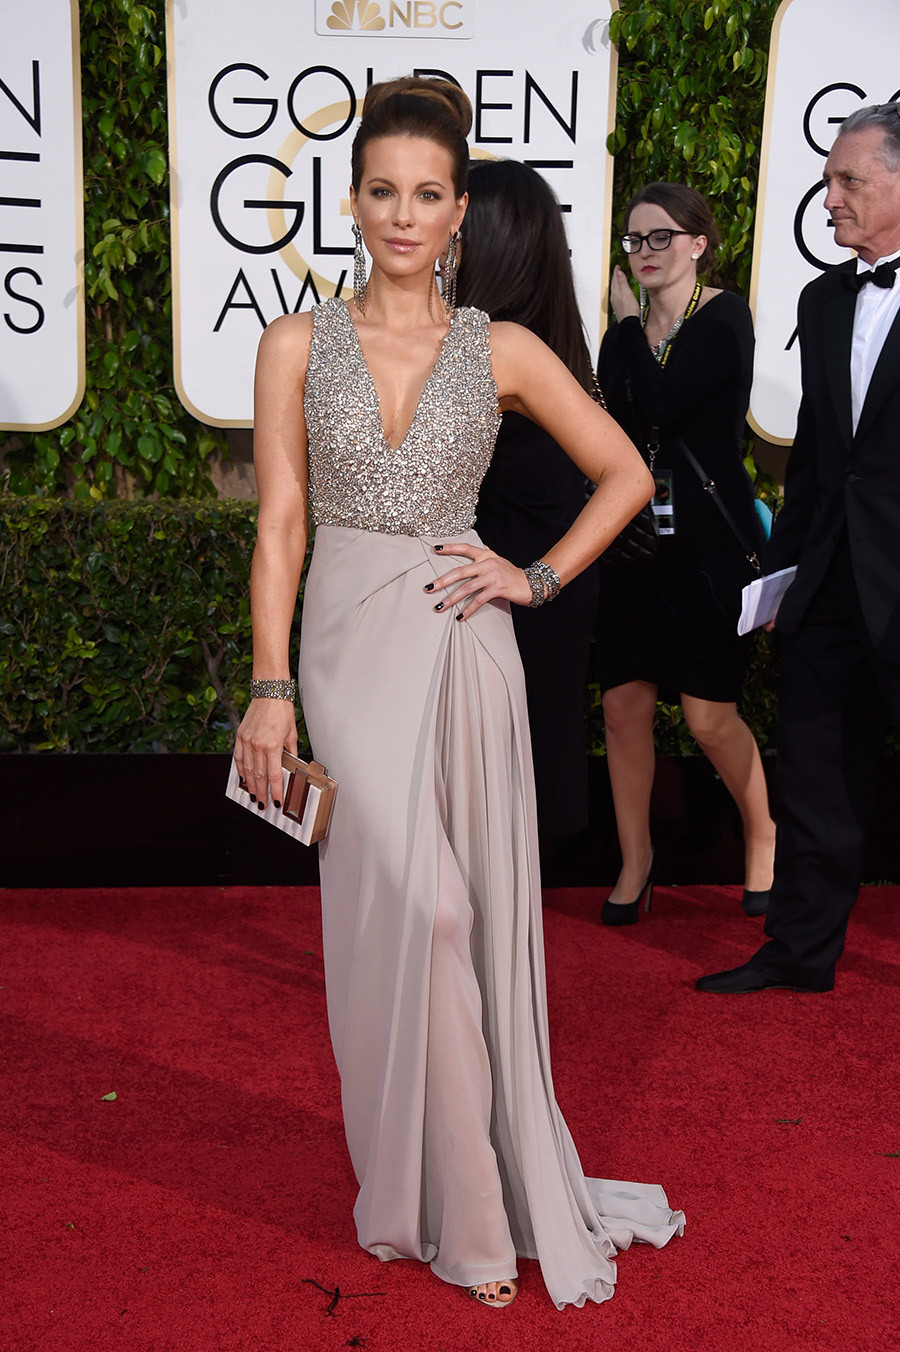 2015 Golden Globe Awards : 8 Underrated Red Carpet Looks